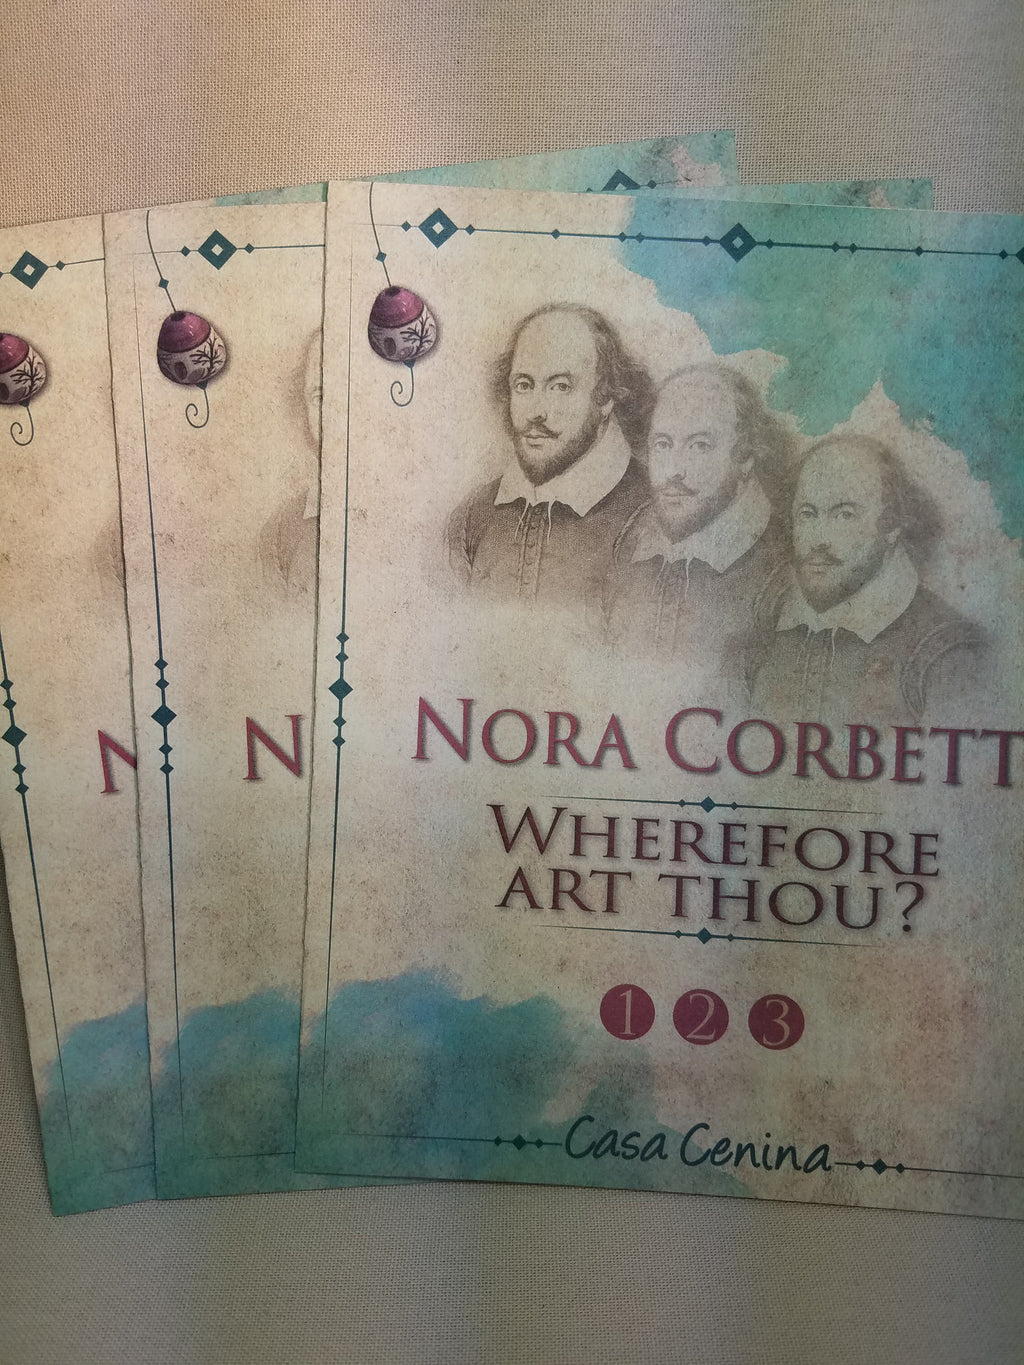 CE1 CE2 CE3 ~  Wherefore Art Thou? -  Part 1,2,3 ~ Nora Corbett